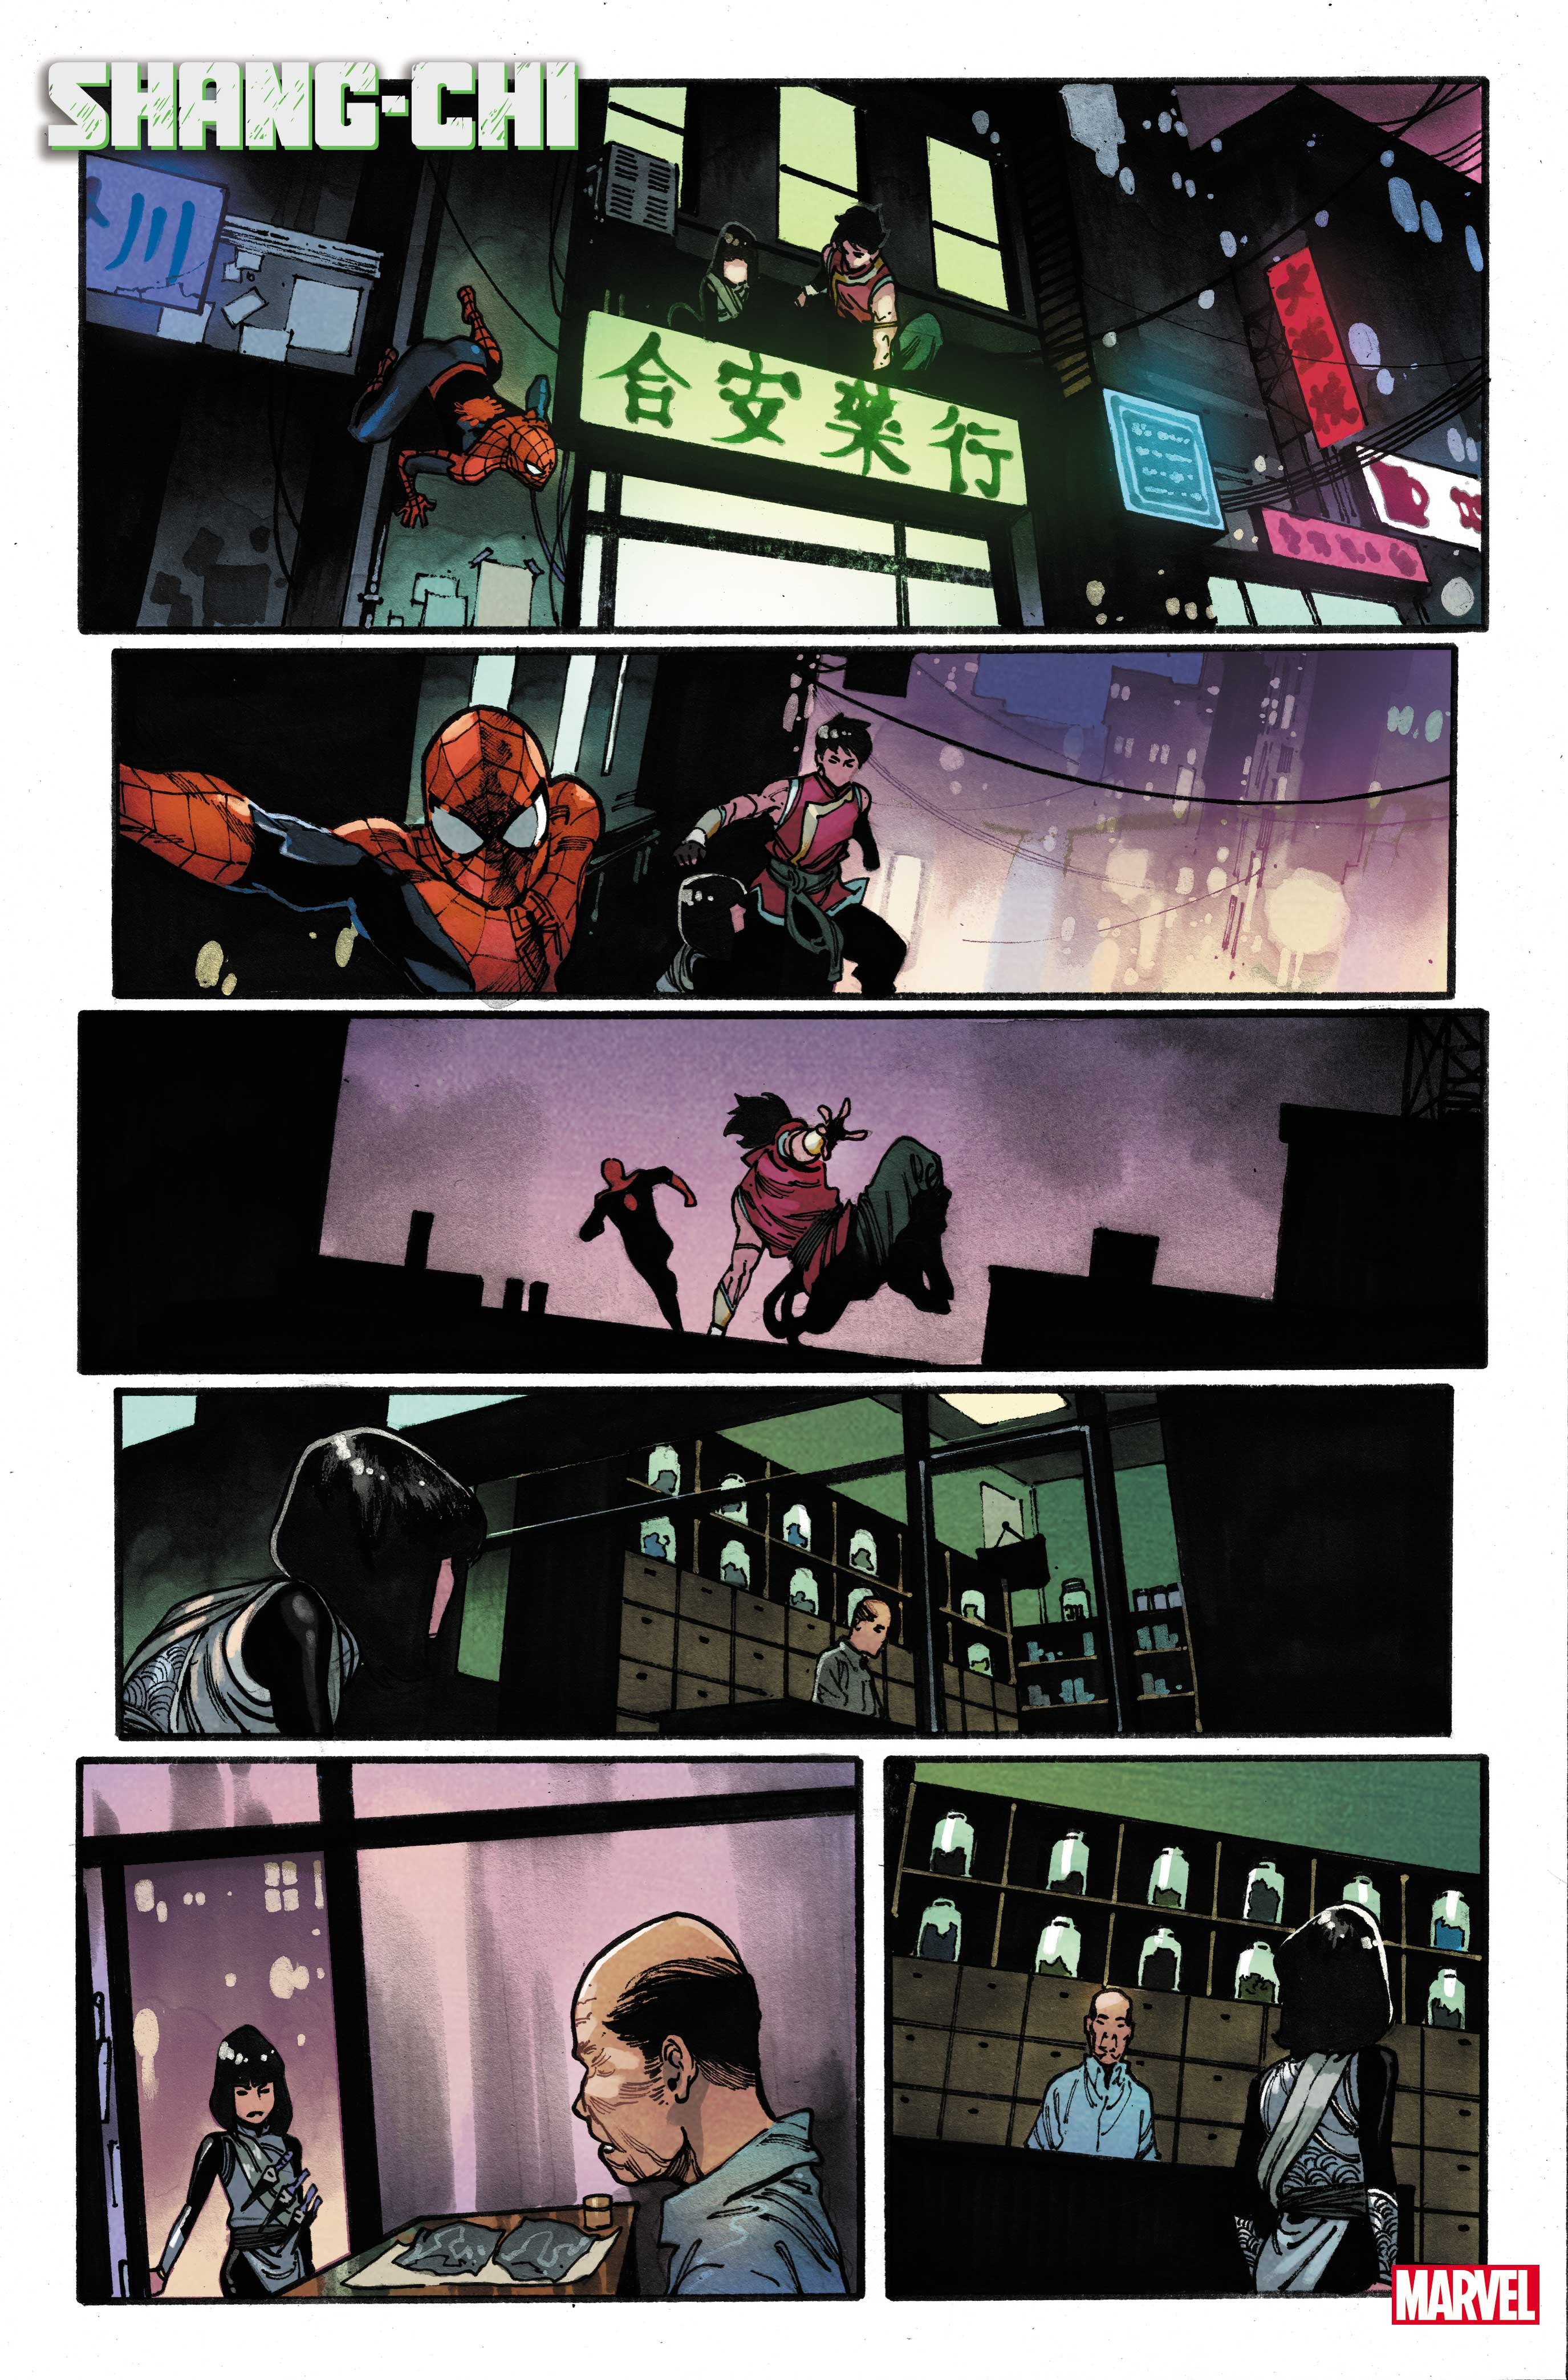 Shang-Chi Preview Page #3 Credit: Marvel